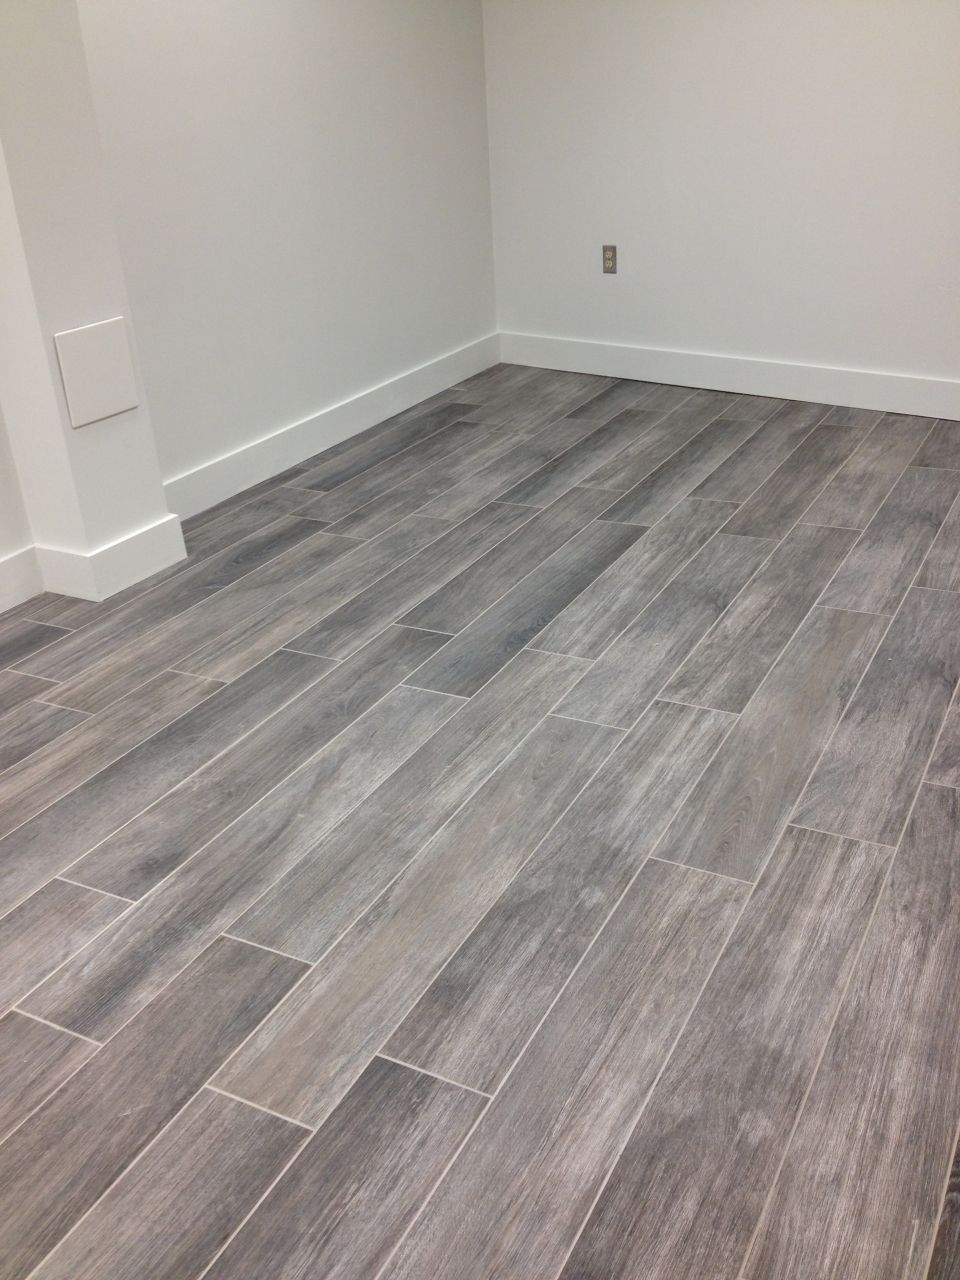 Gray wood tile floor no3lcd6n8 homes pinterest wood Paint colors that go with grey flooring